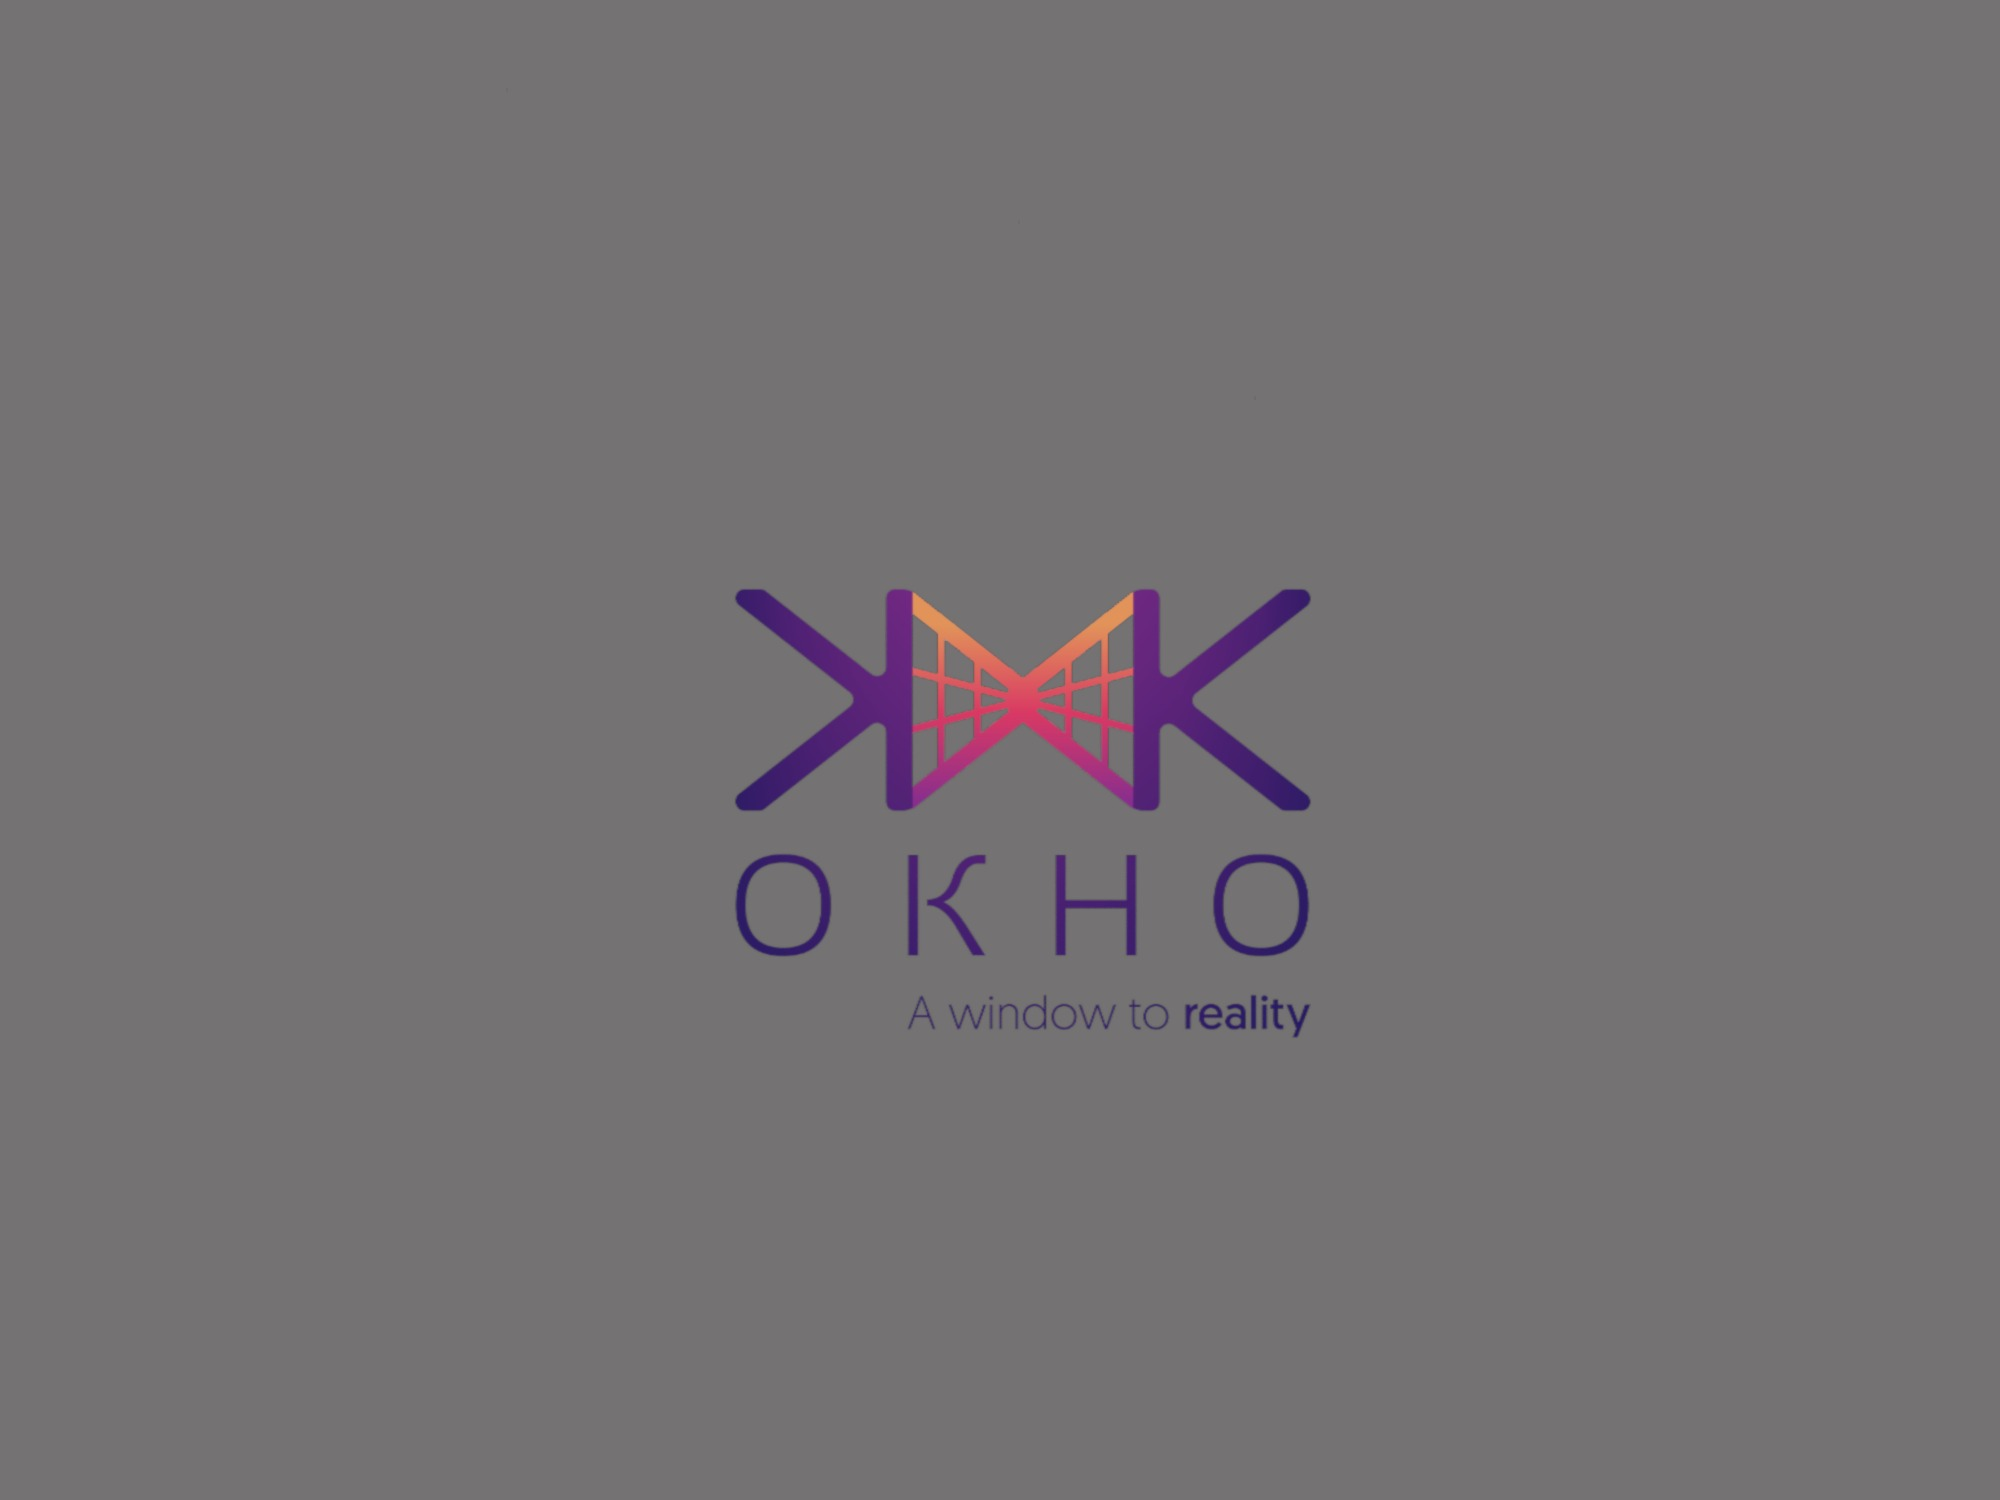 okho - 3D design by Carlos Avella on Oct 21, 2018